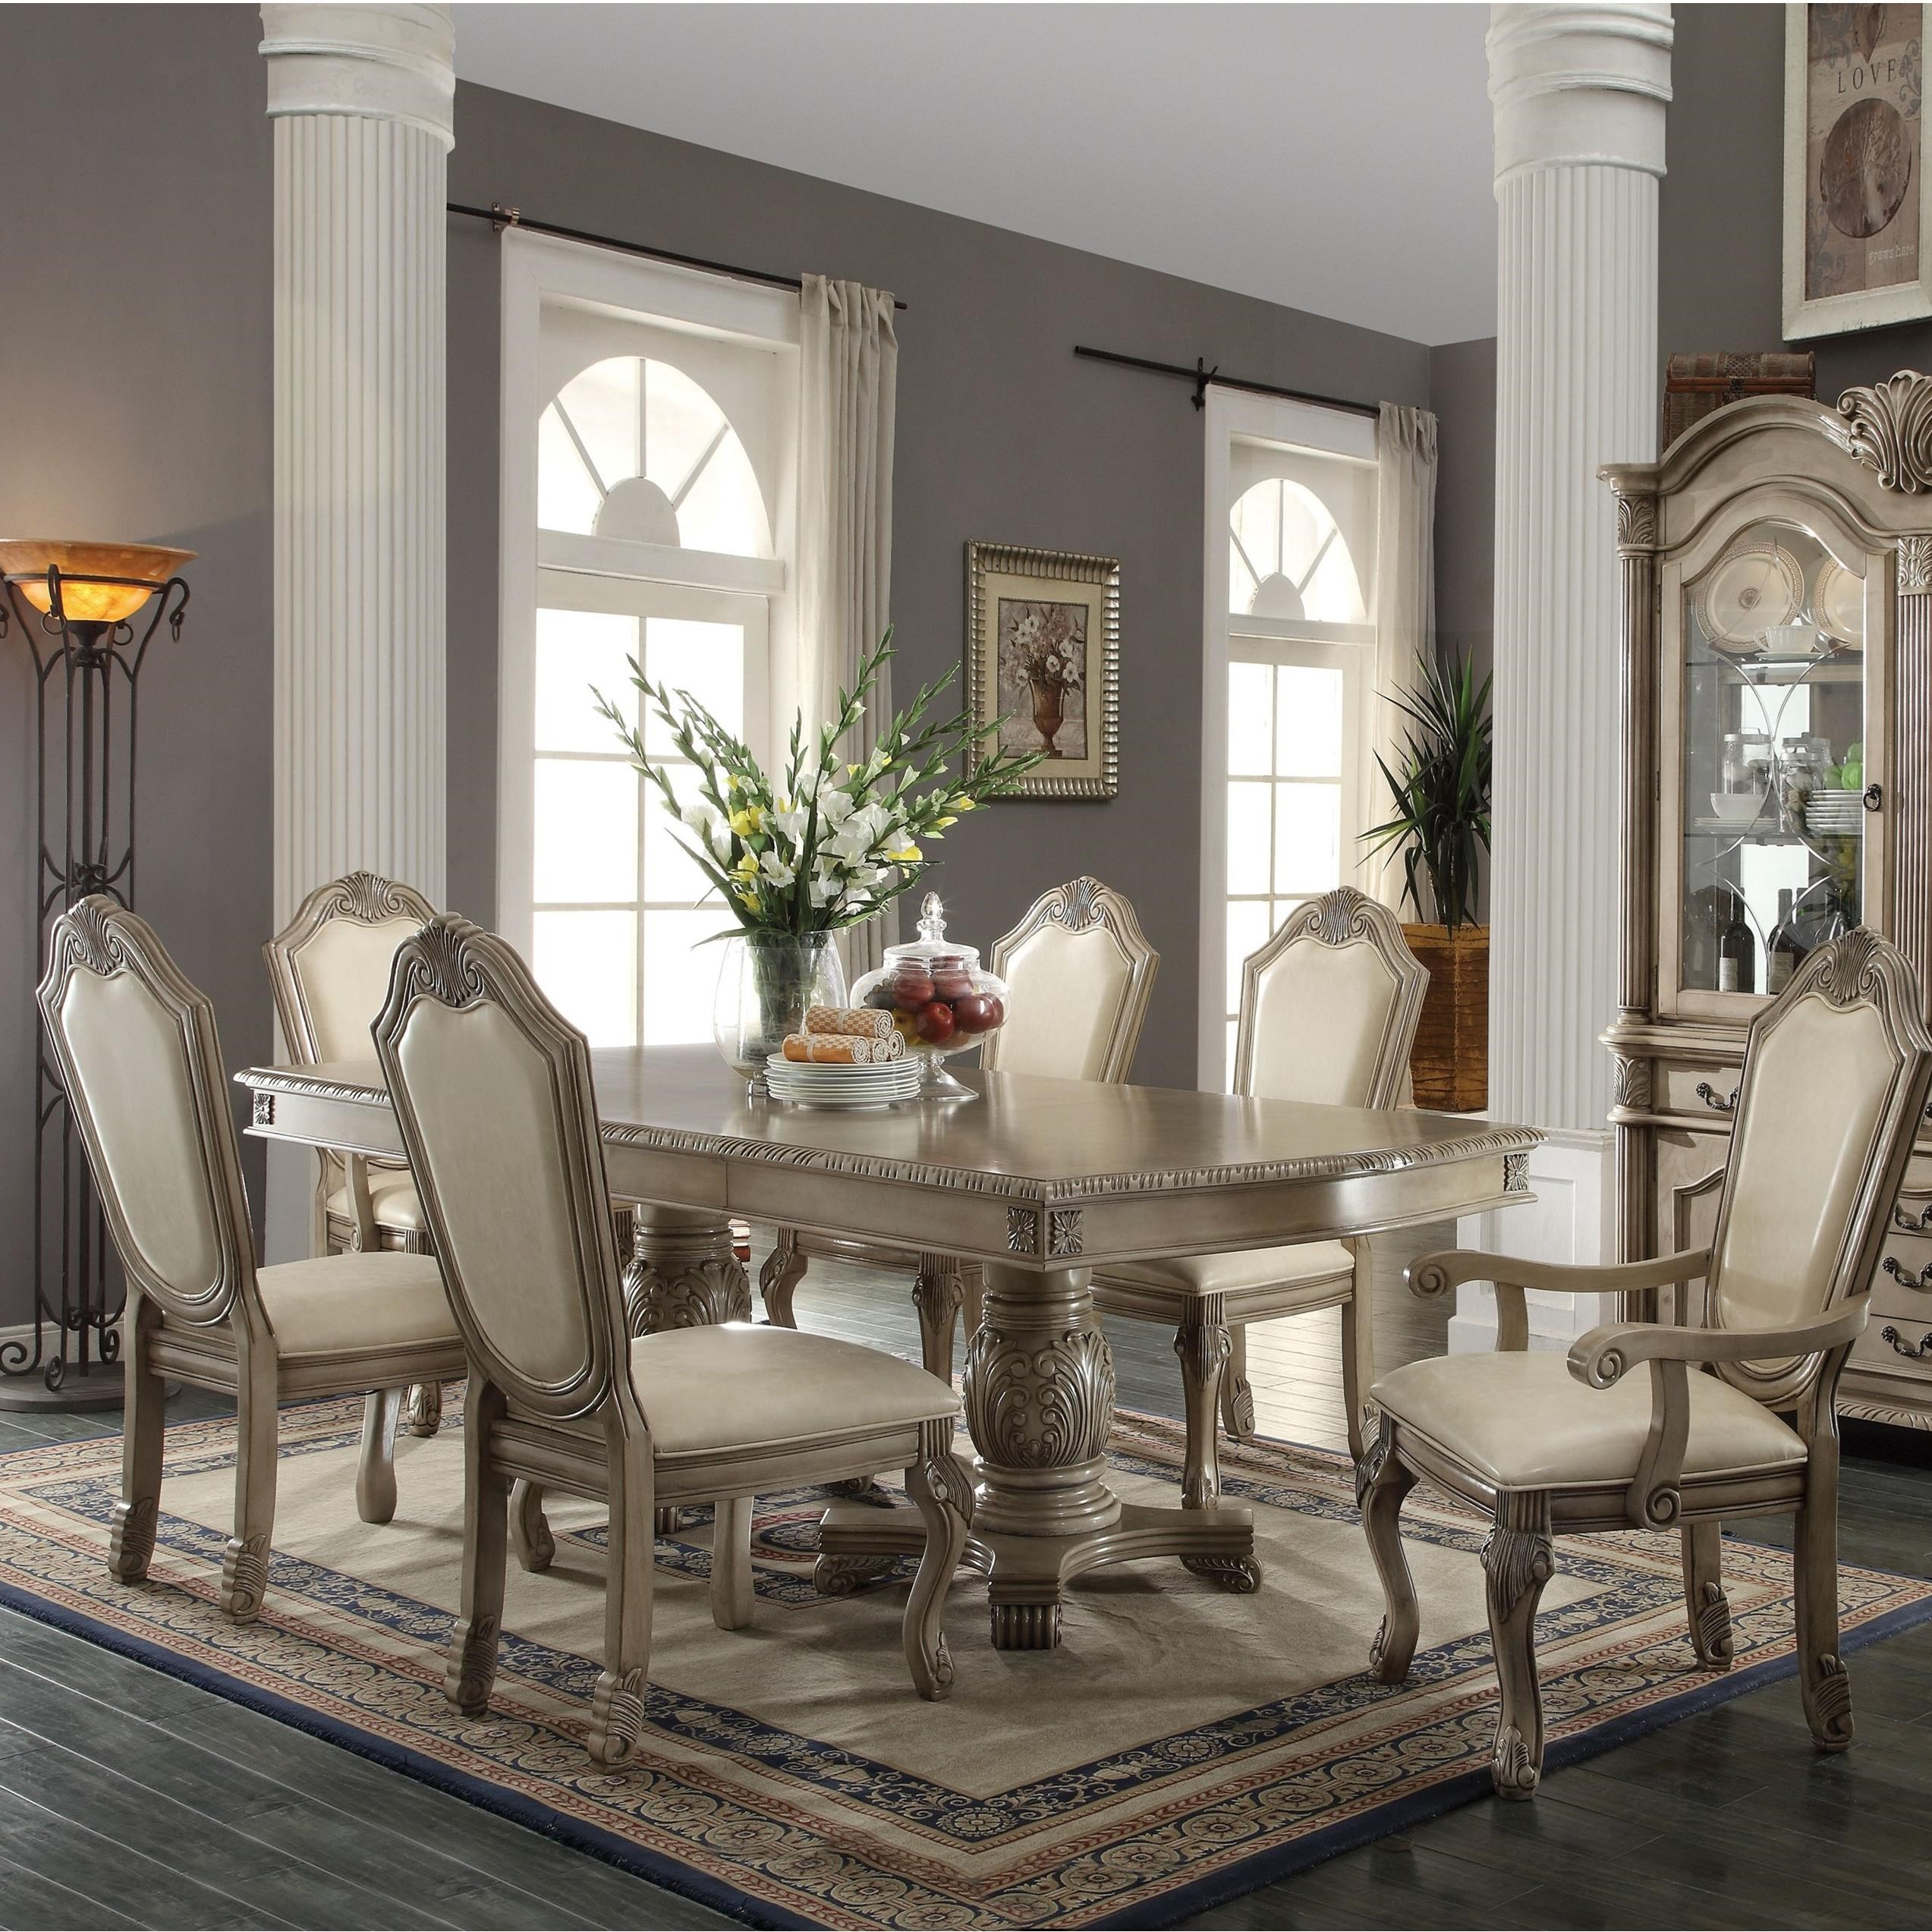 Acme Furniture Chateau De Ville 64065 2x64068 4x64067 7 Piece Formal Dining Set With Fabric Upholstered Chairs Corner Furniture Dining 7 Or More Piece Sets